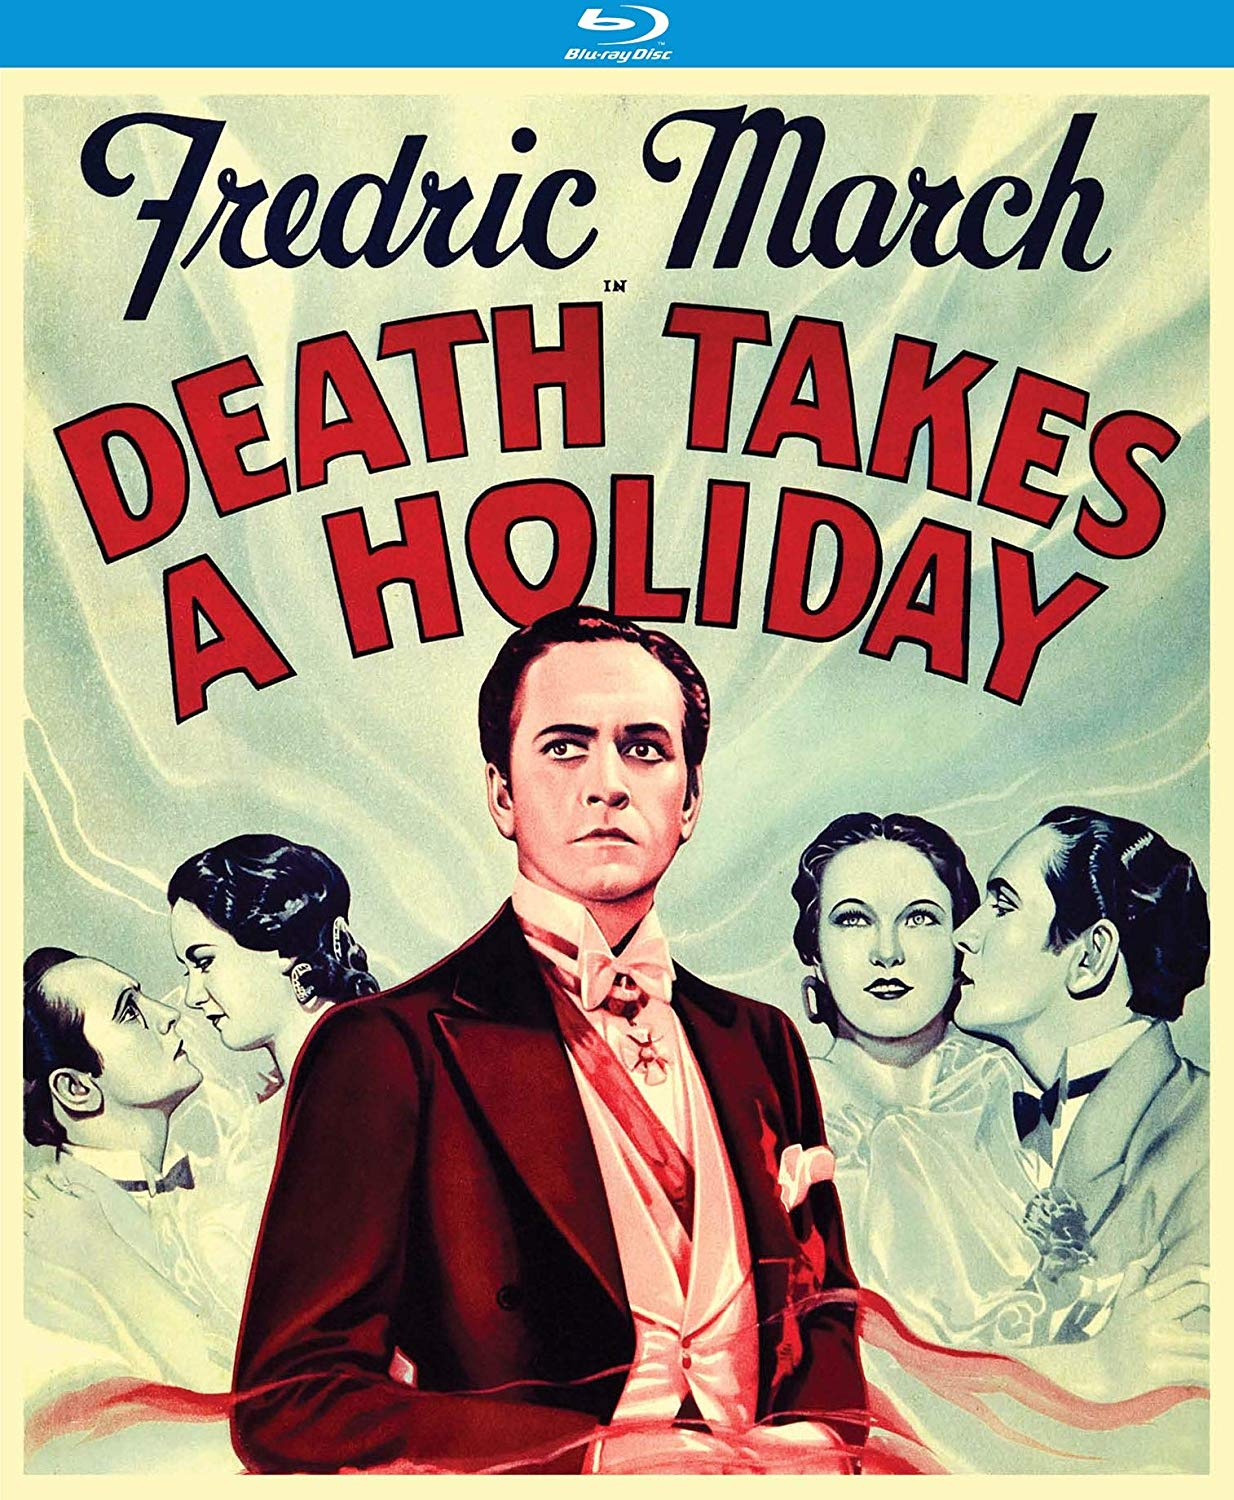 Death Takes a Holiday Blu-ray - Buy at Amazon